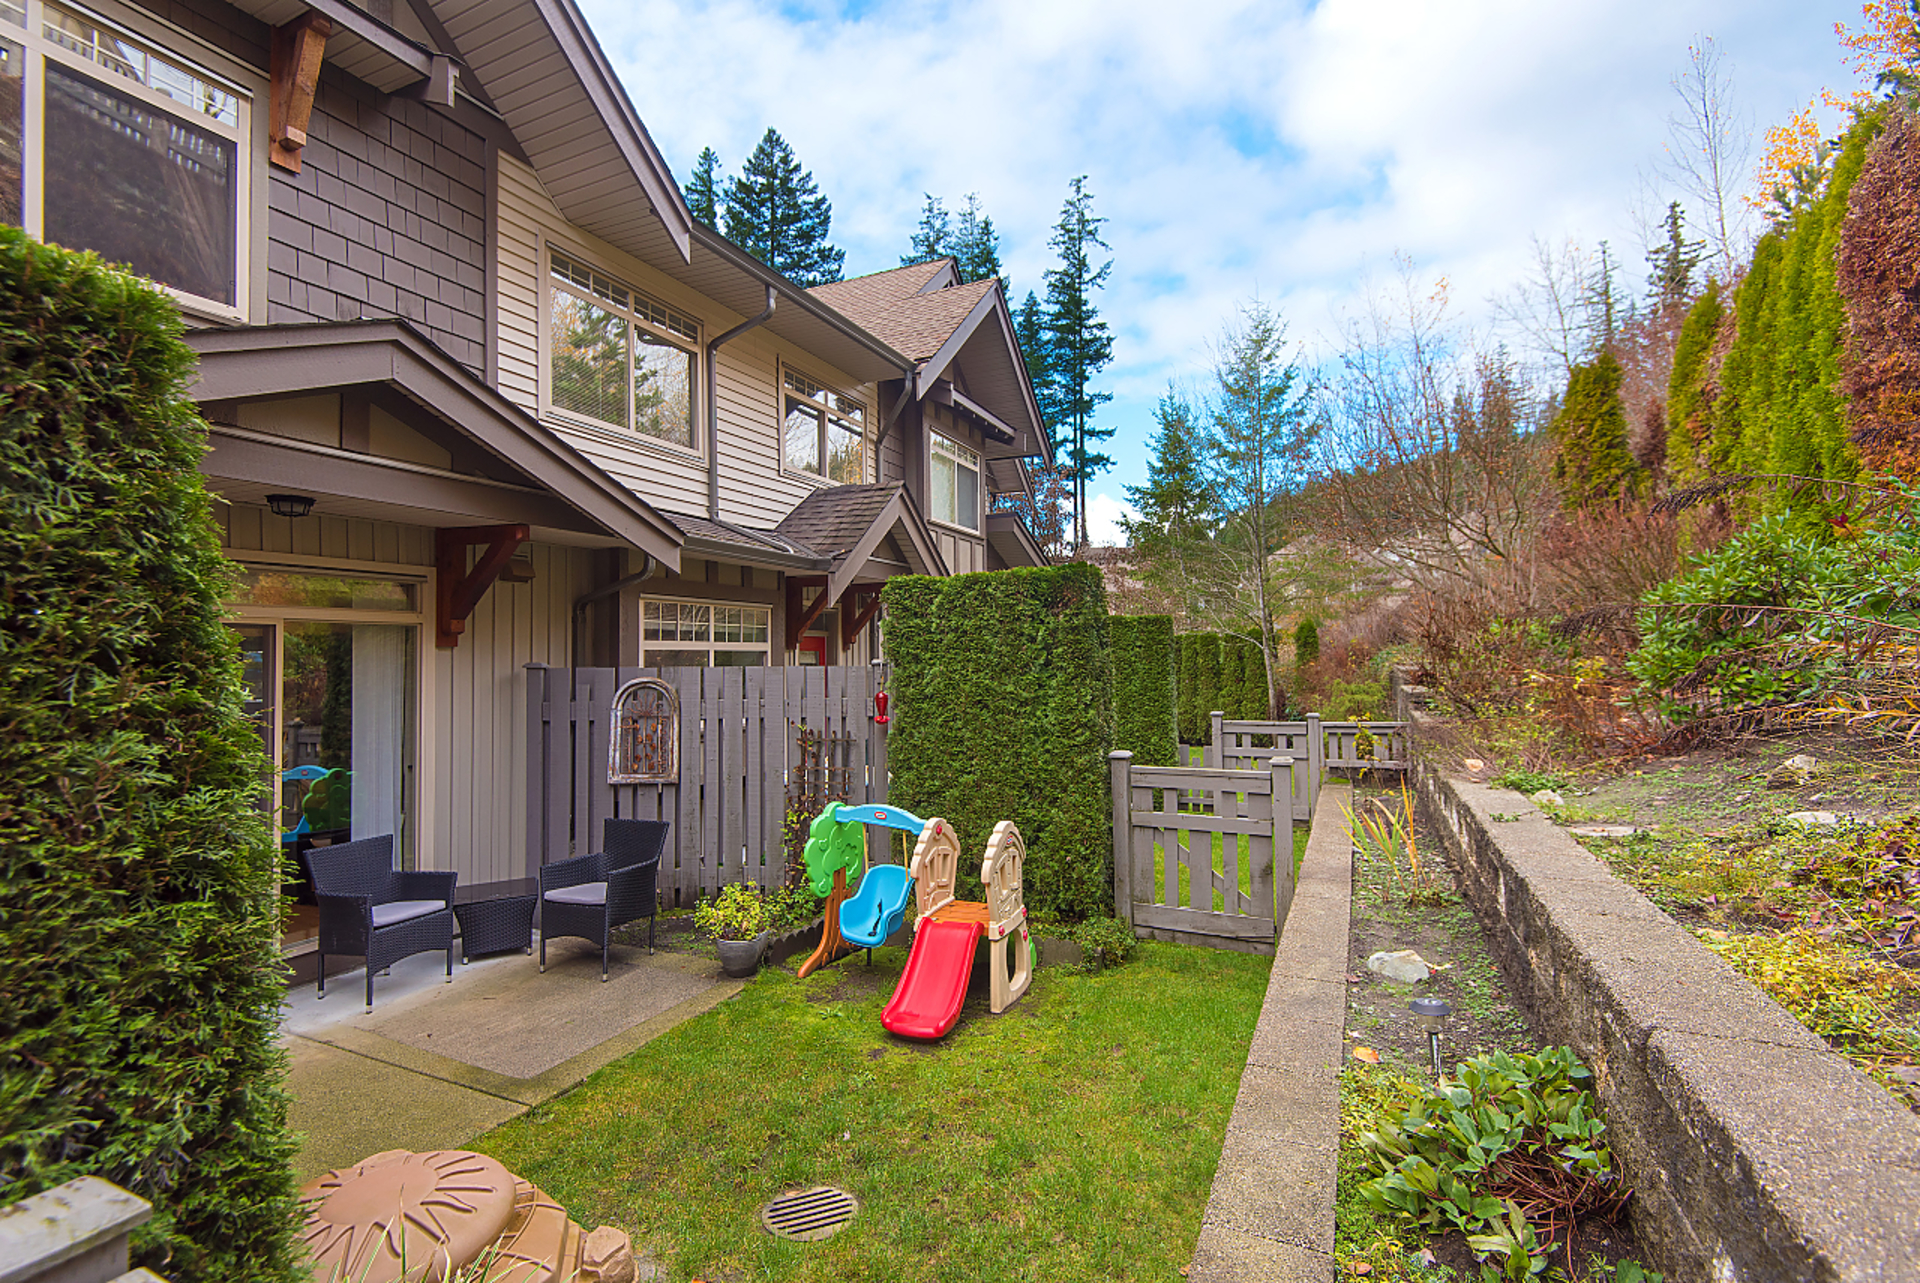 036 at 3 - 55 Hawthorn Drive, Heritage Woods PM, Port Moody